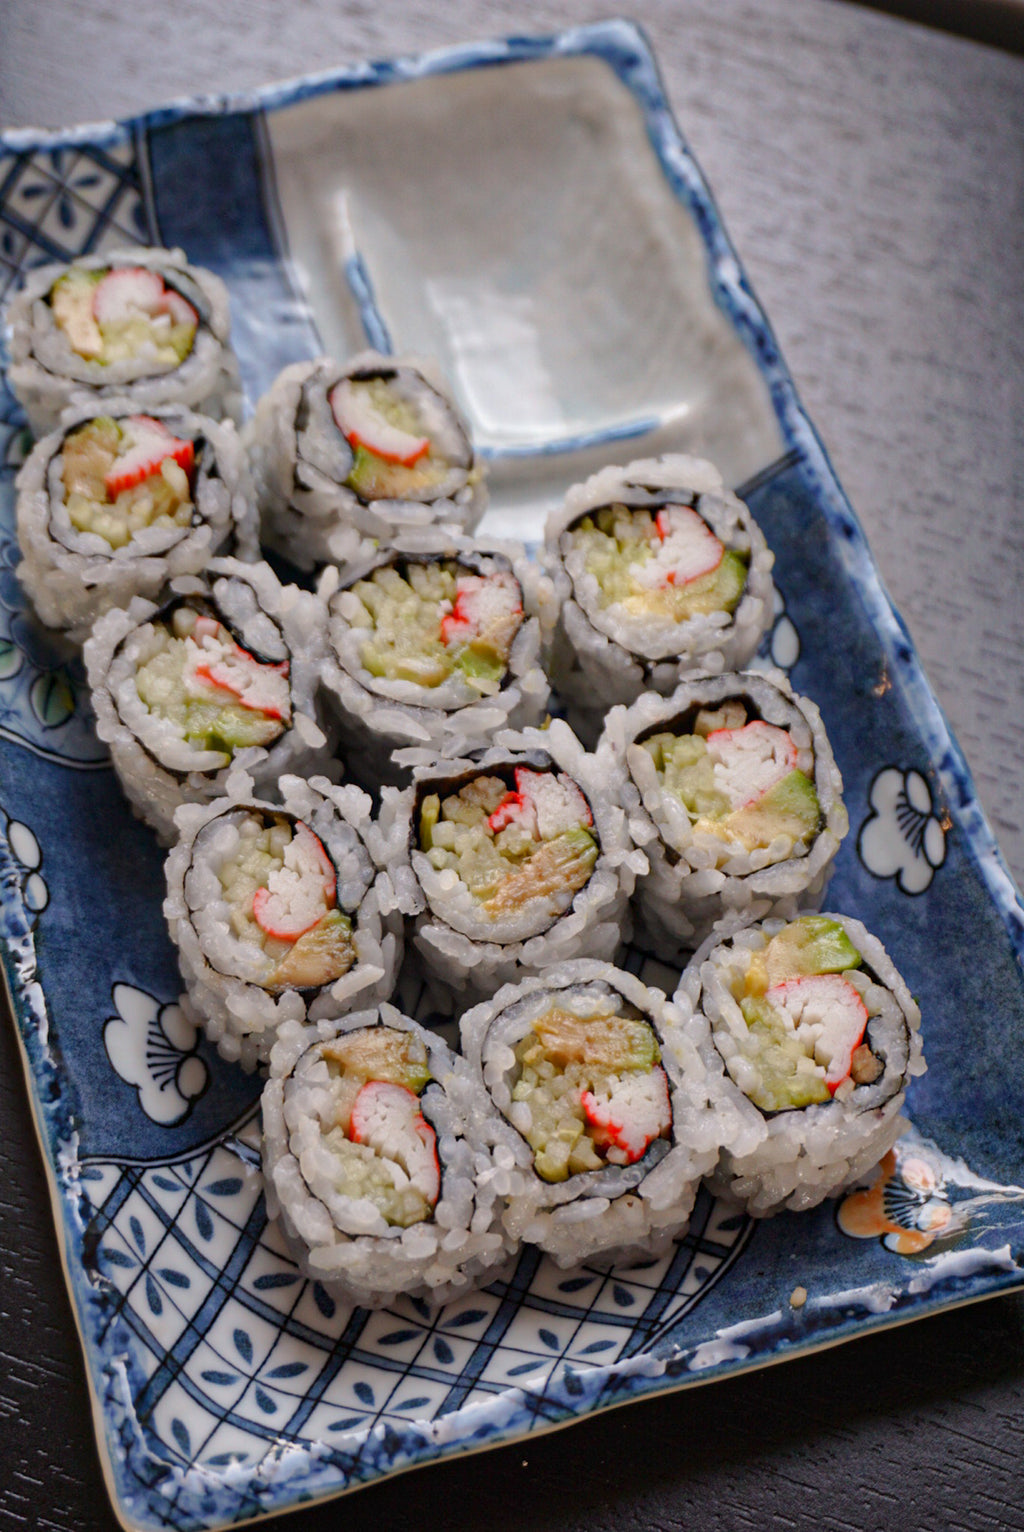 California Roll - Park Slope